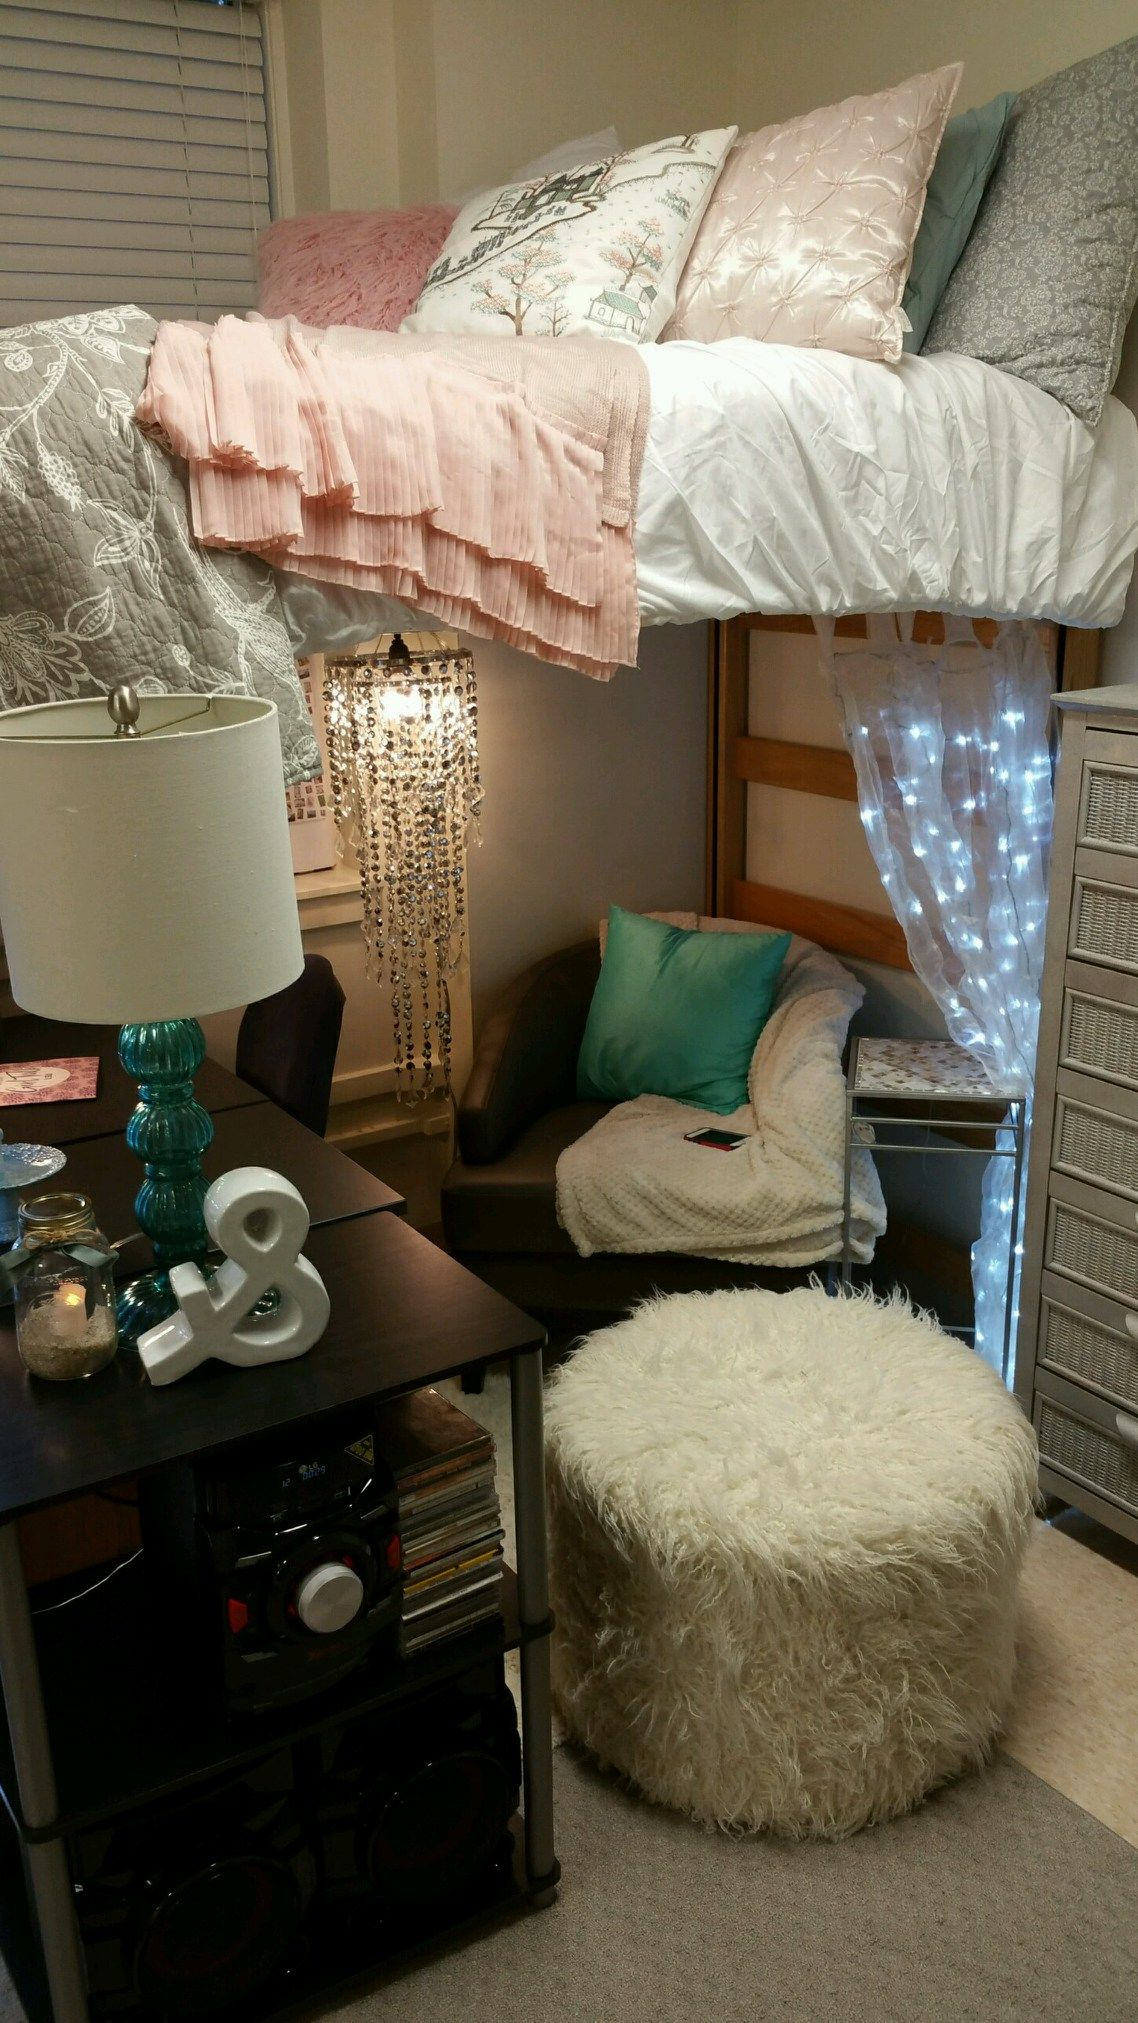 Ideas For Dorm Room: College Bedroom Decor, Girls